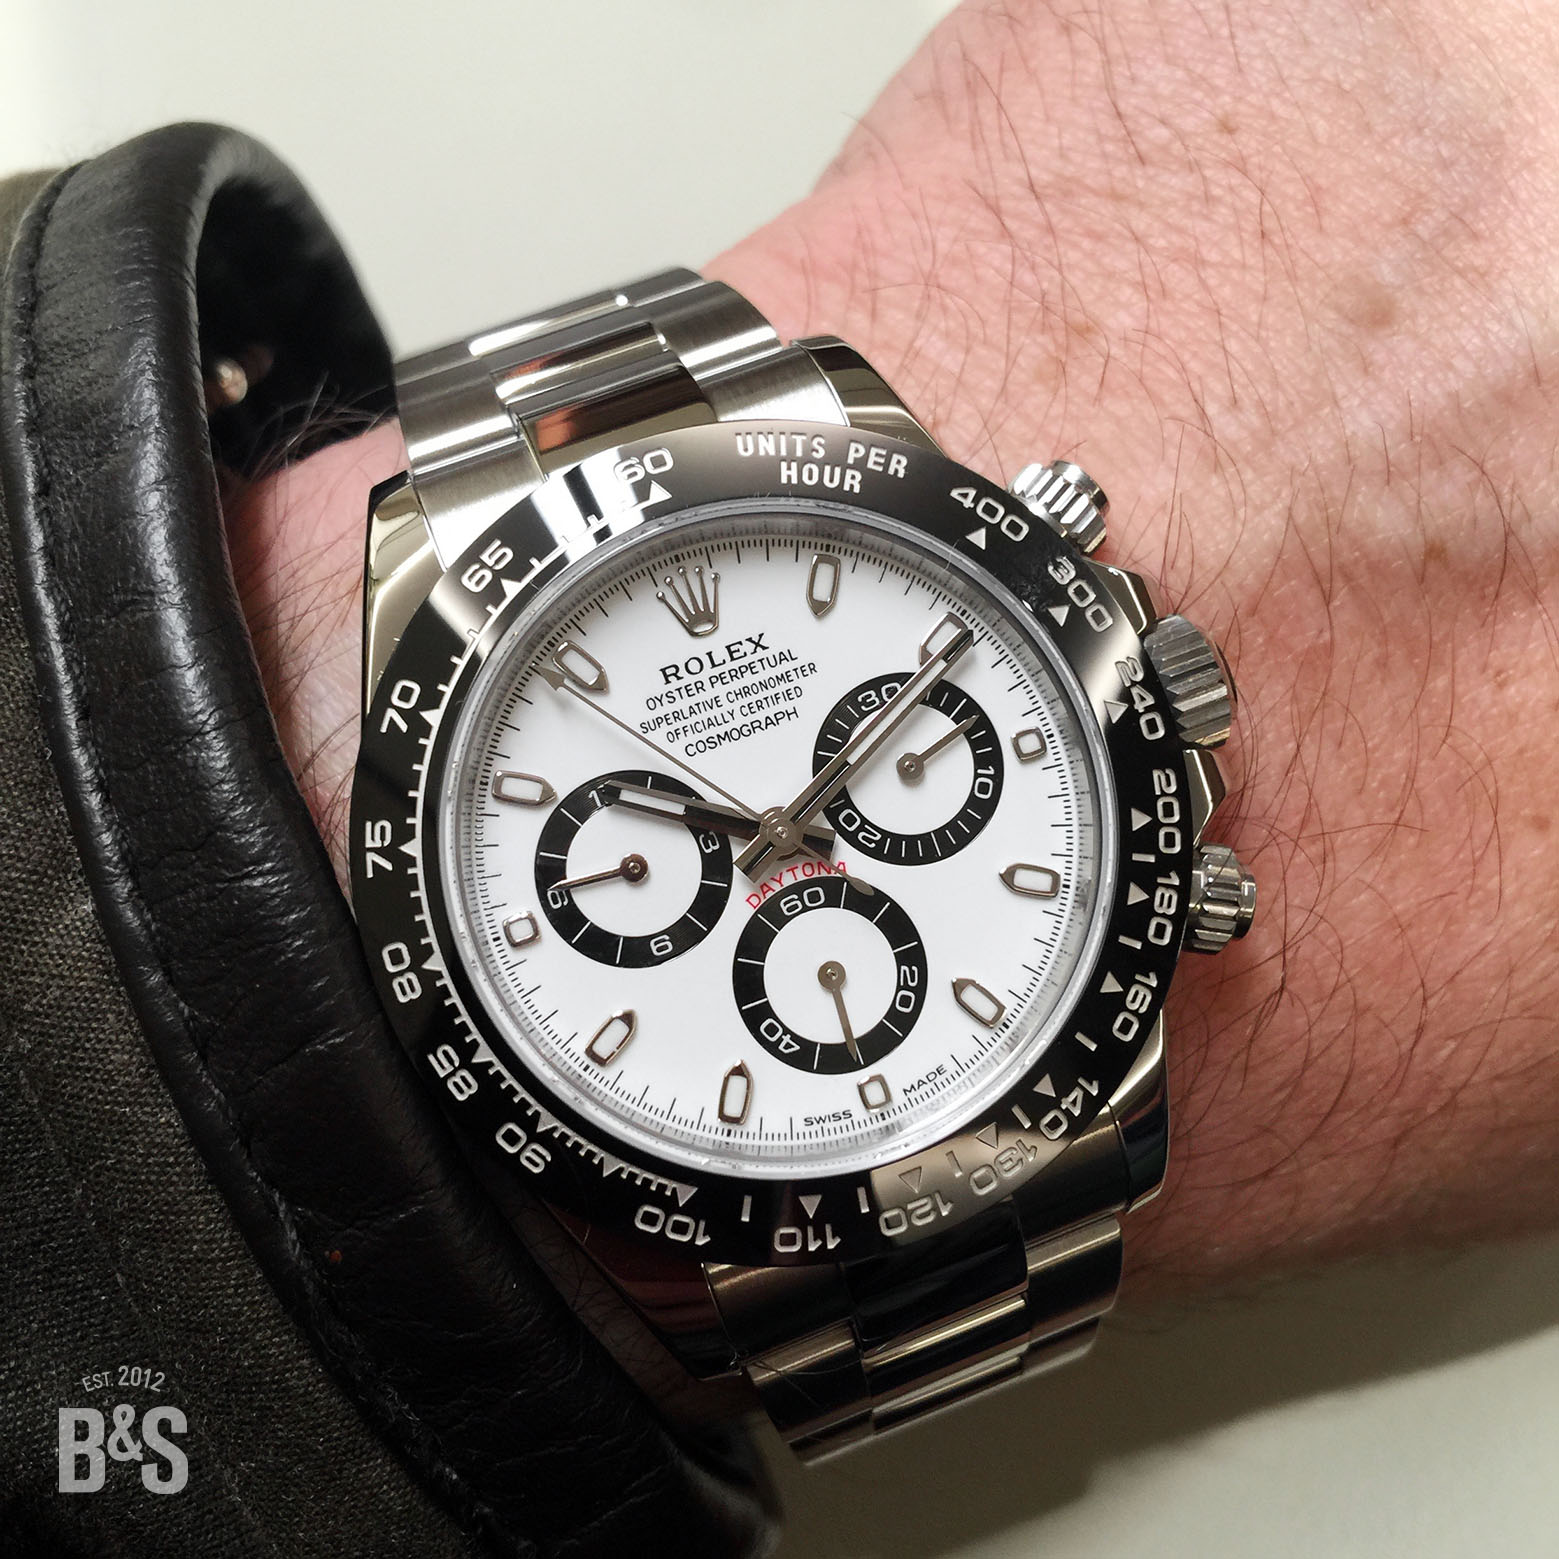 The New Rolex Daytona 116500 LN with ceramic bezel in black and white.